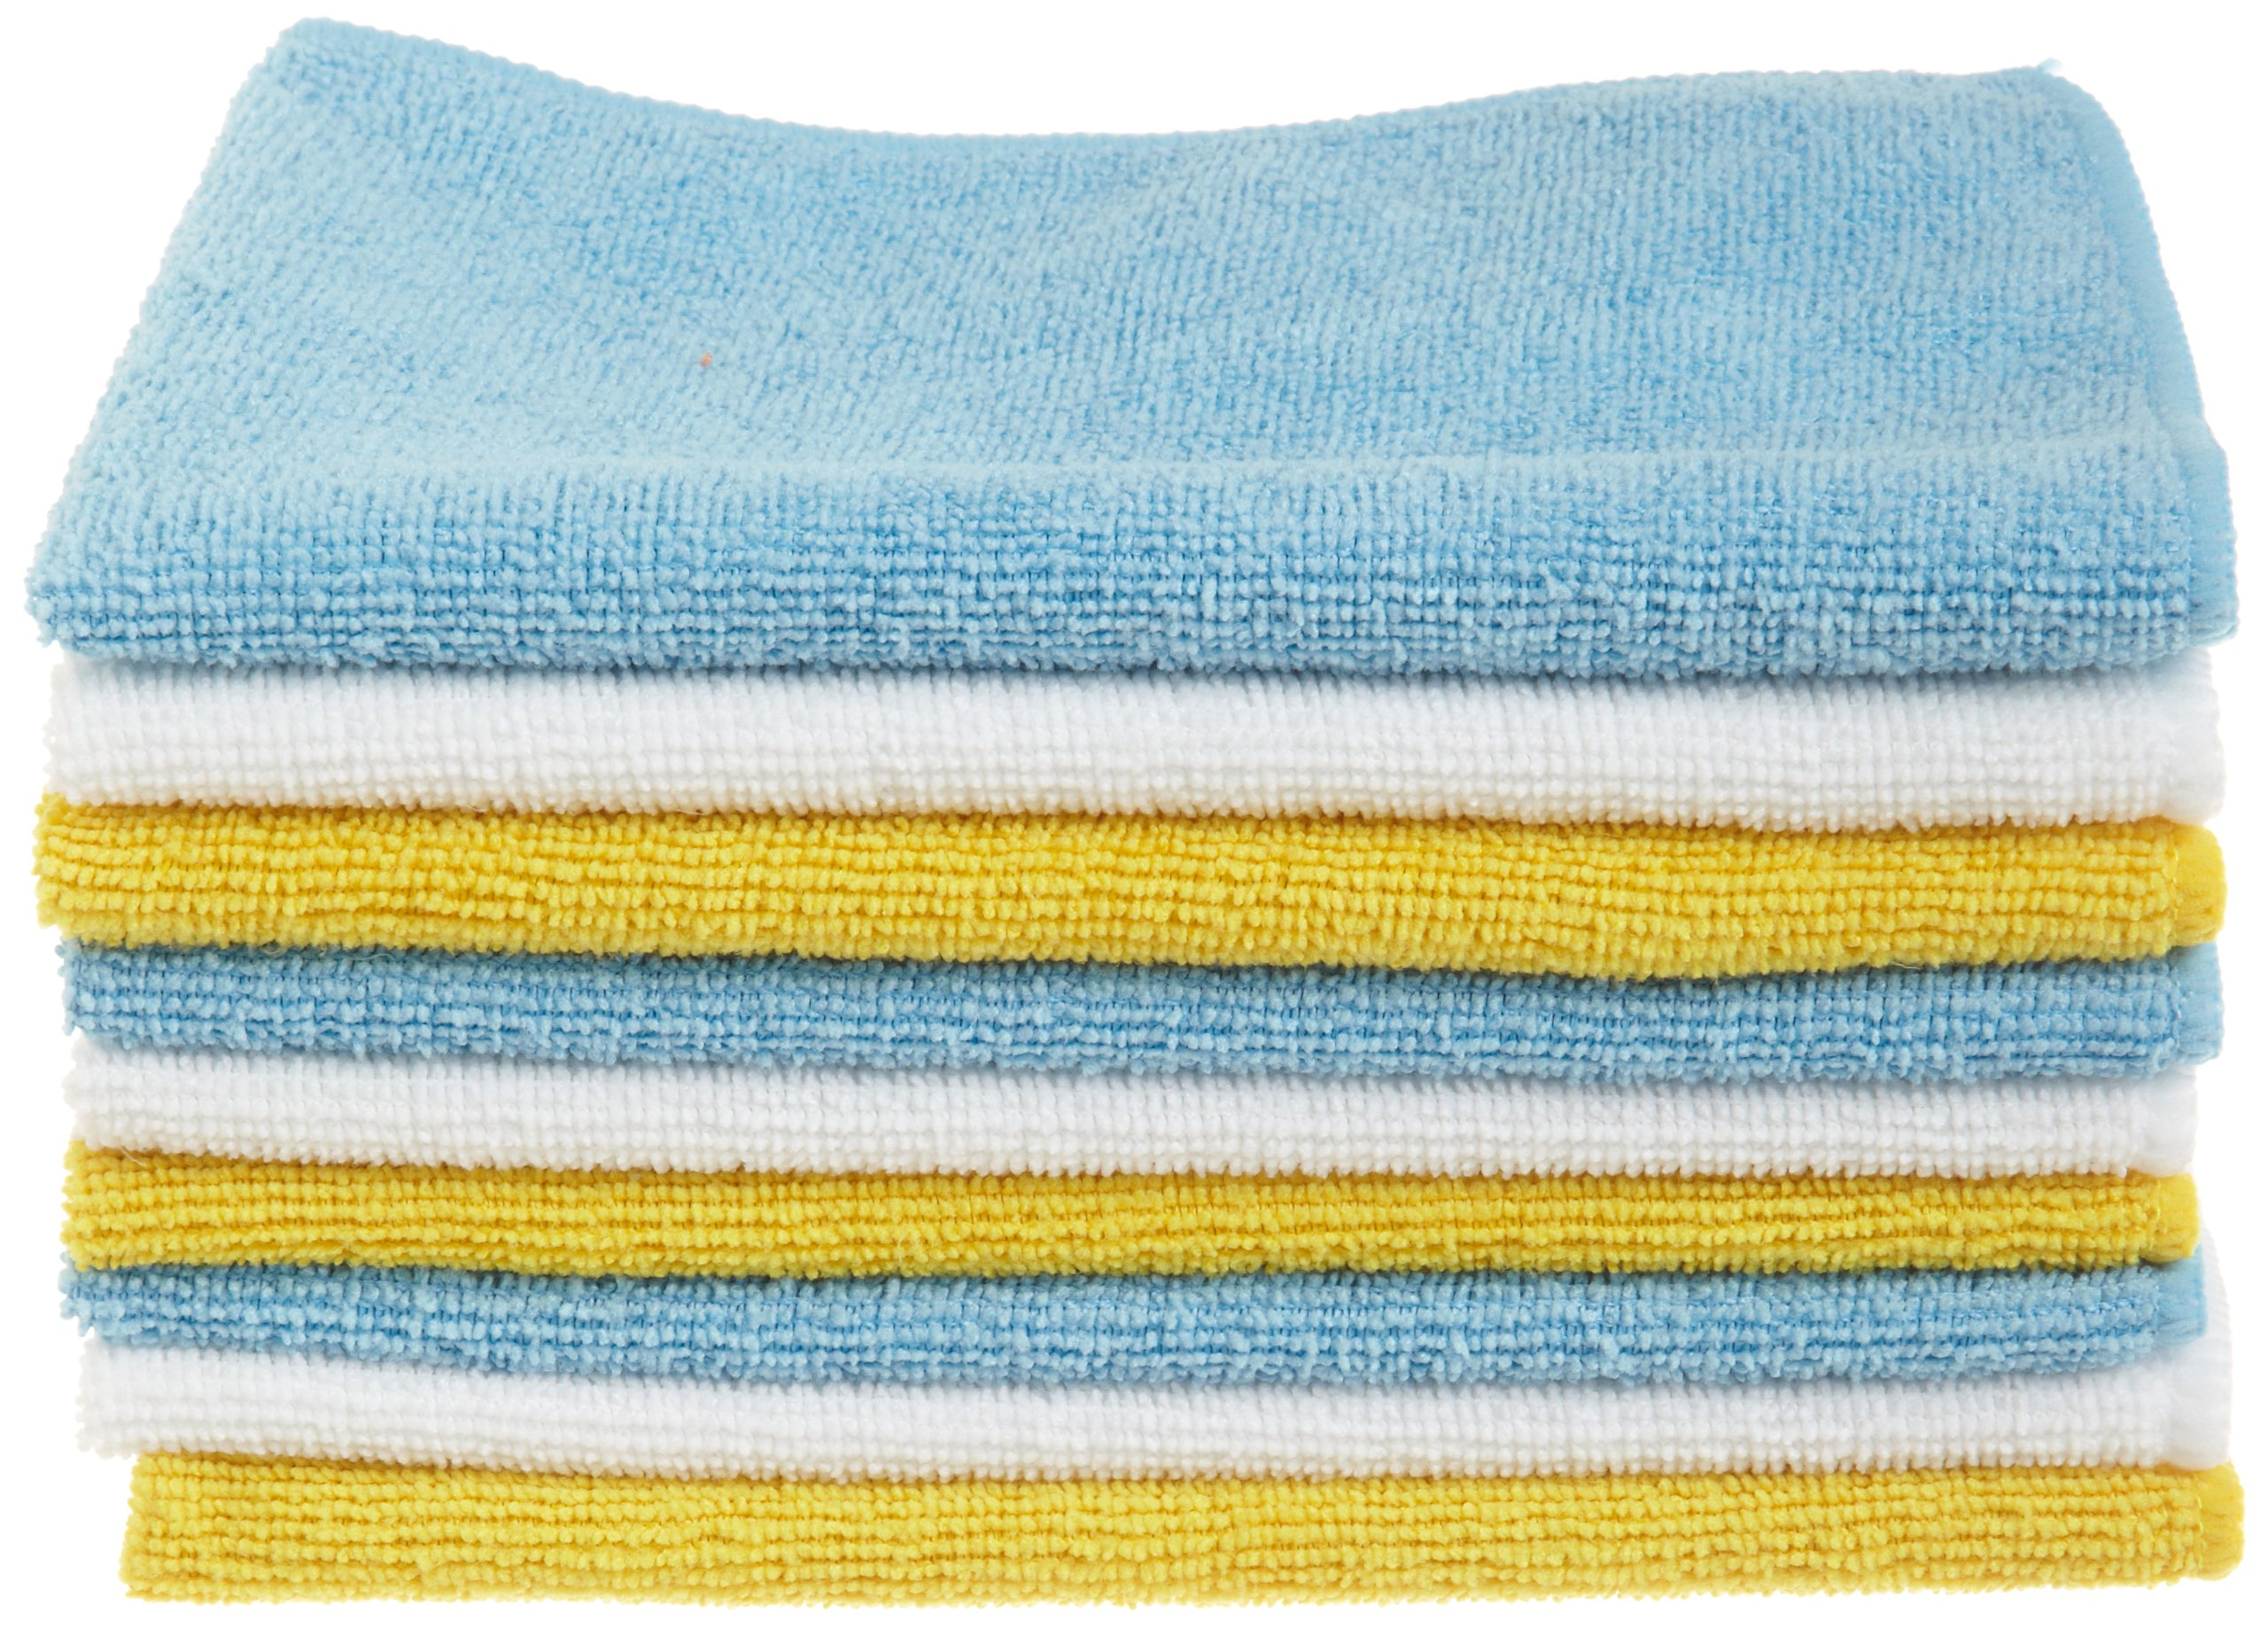 AmazonBasics Blue and Yellow Microfiber Cleaning Cloth, 24-Pack by AmazonBasics